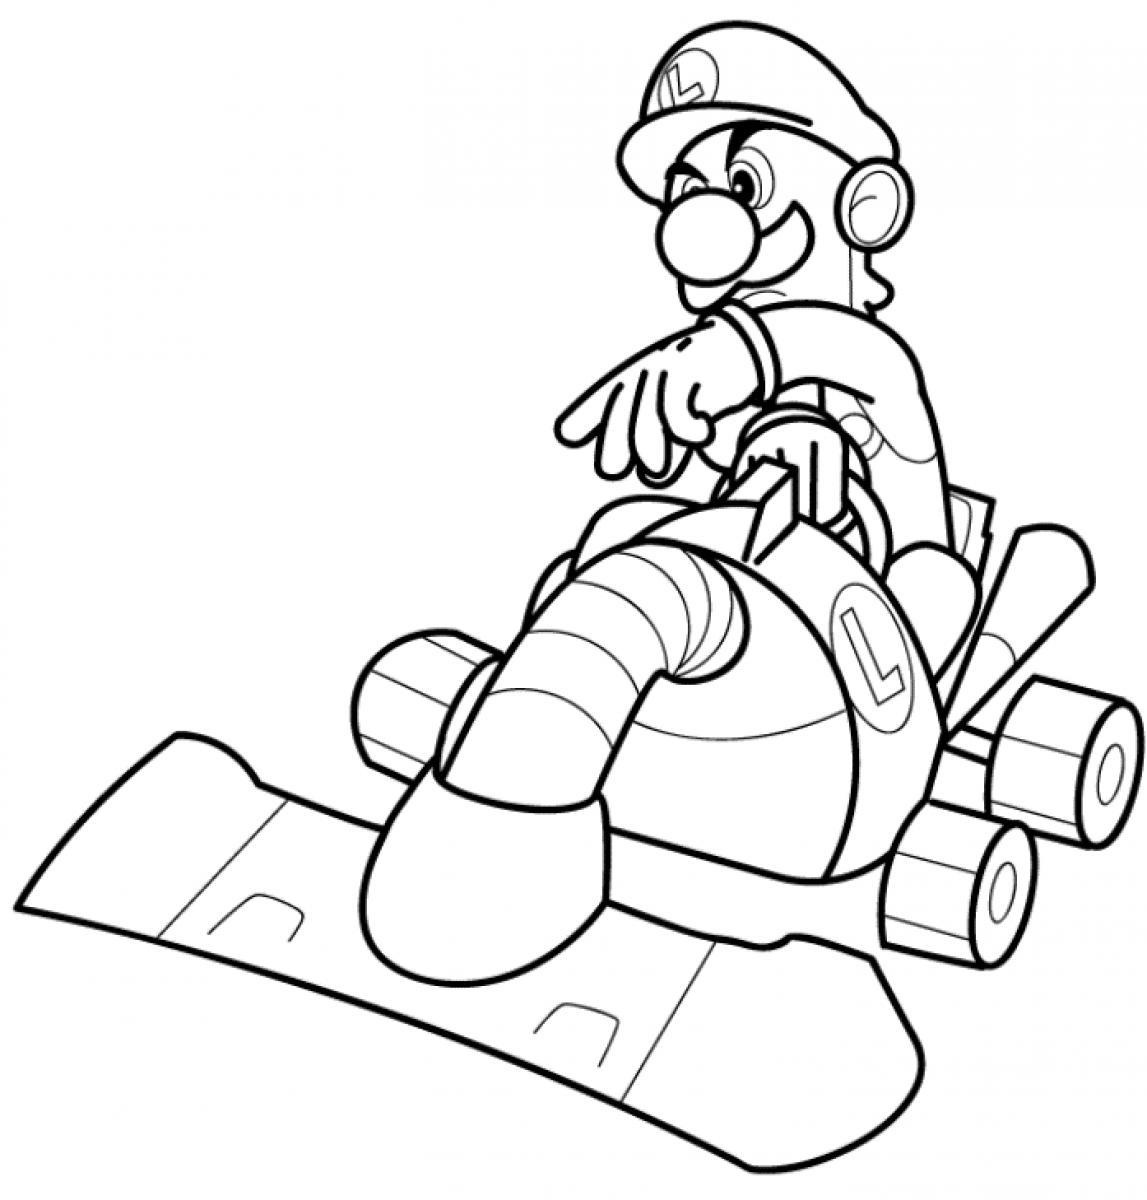 Tremendous Luigi Coloring Pages Image Inspirations Baby Mario And Nintendo  Mansion Super – Approachingtheelephant